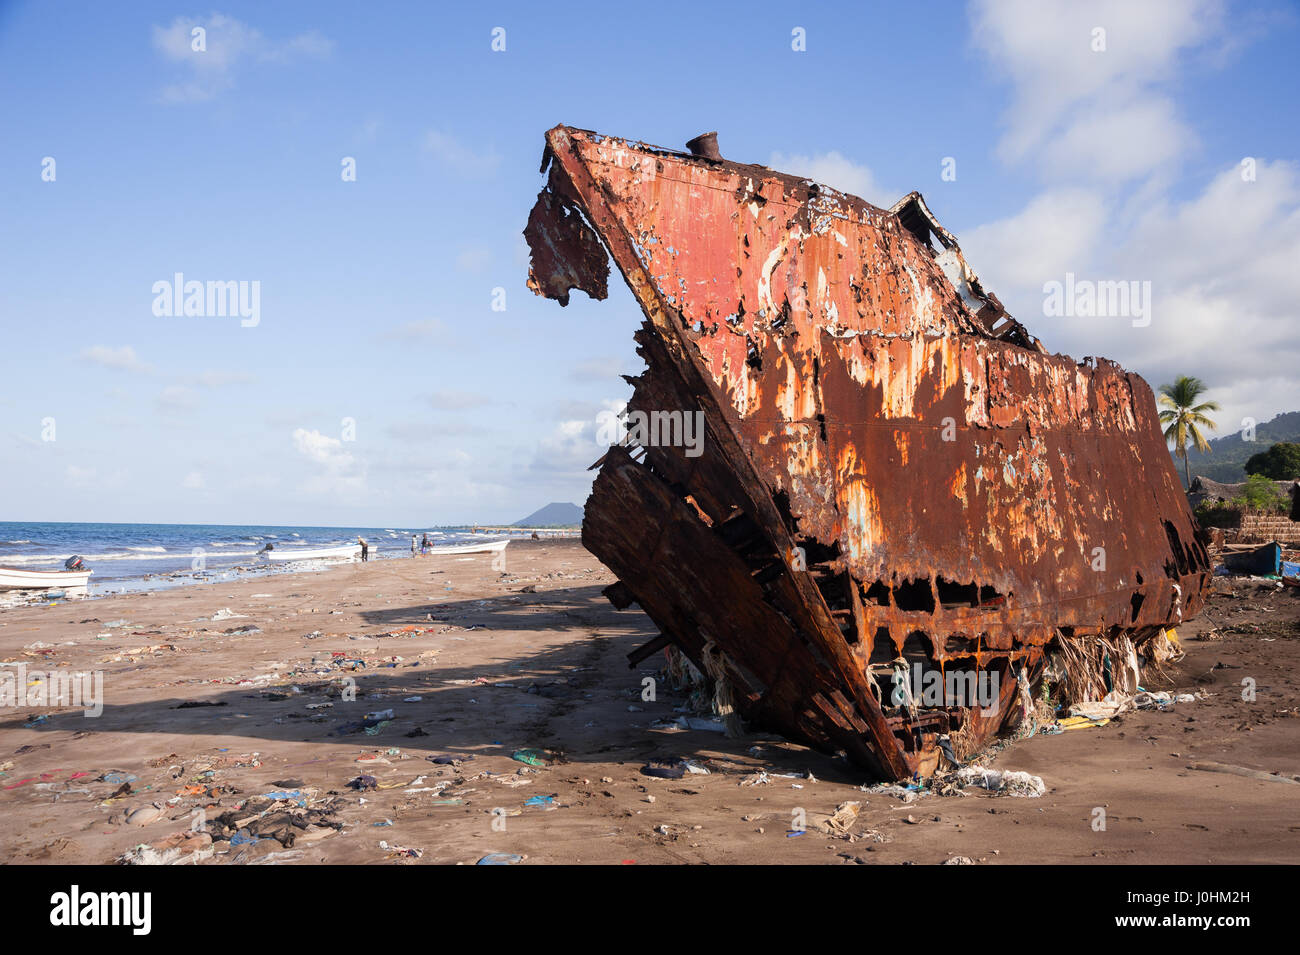 A ship wreck on the Indian Ocean island of Moheli, also known as Mwali,  the smallest of the Comoros' three - Stock Image